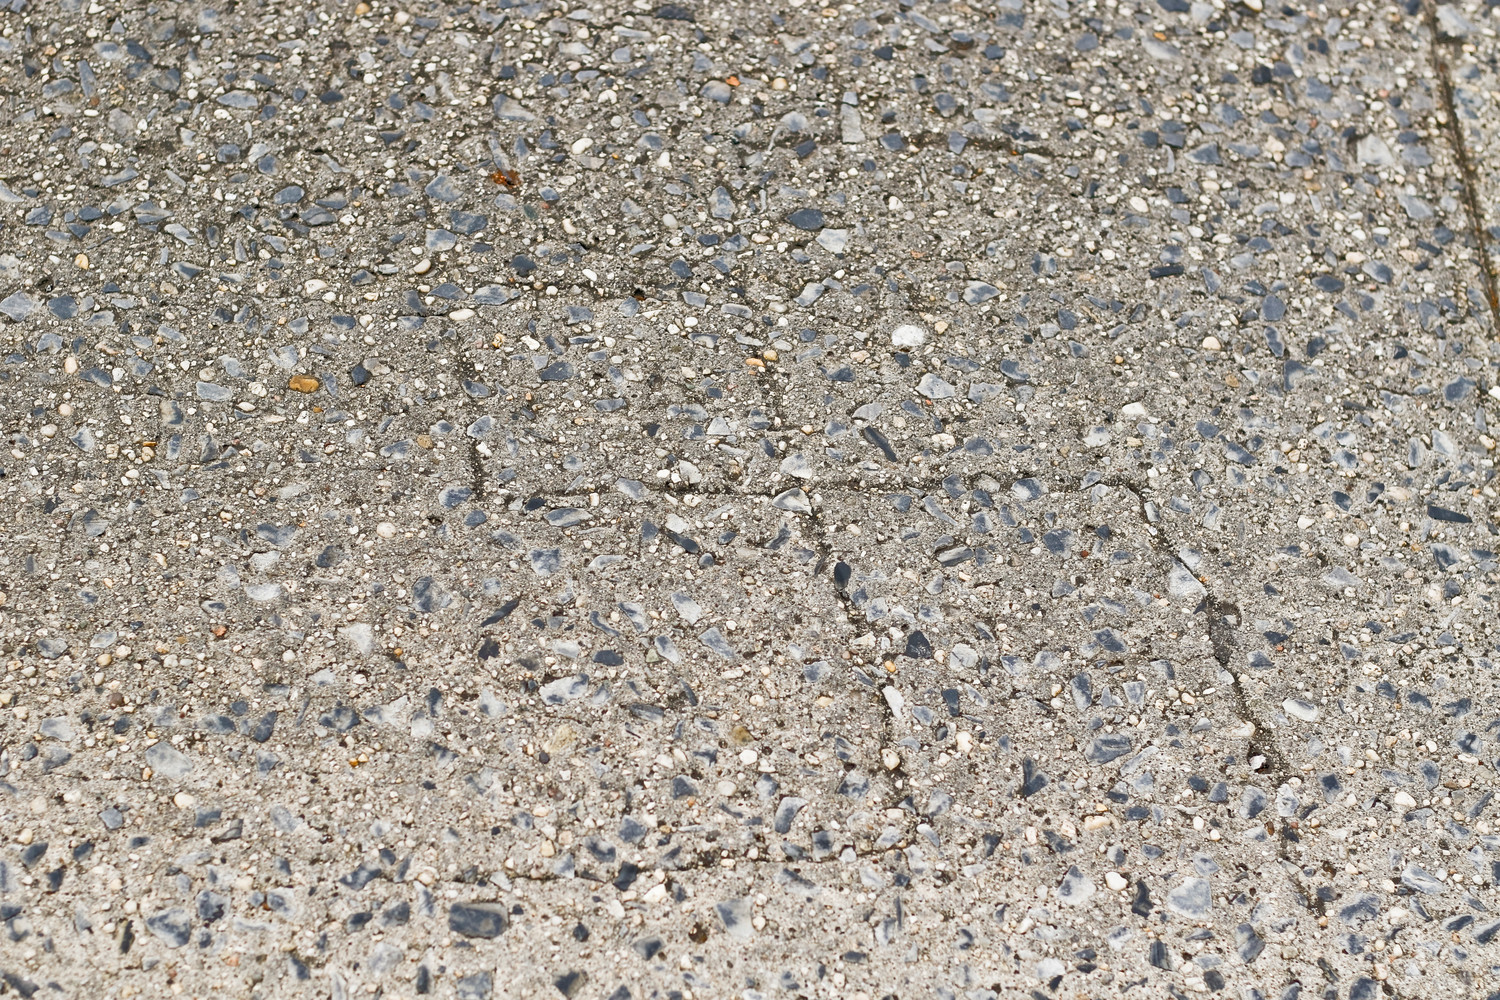 A swastika was found scratched into a driveway at 436 Atlantic Ave. in East Rockaway.